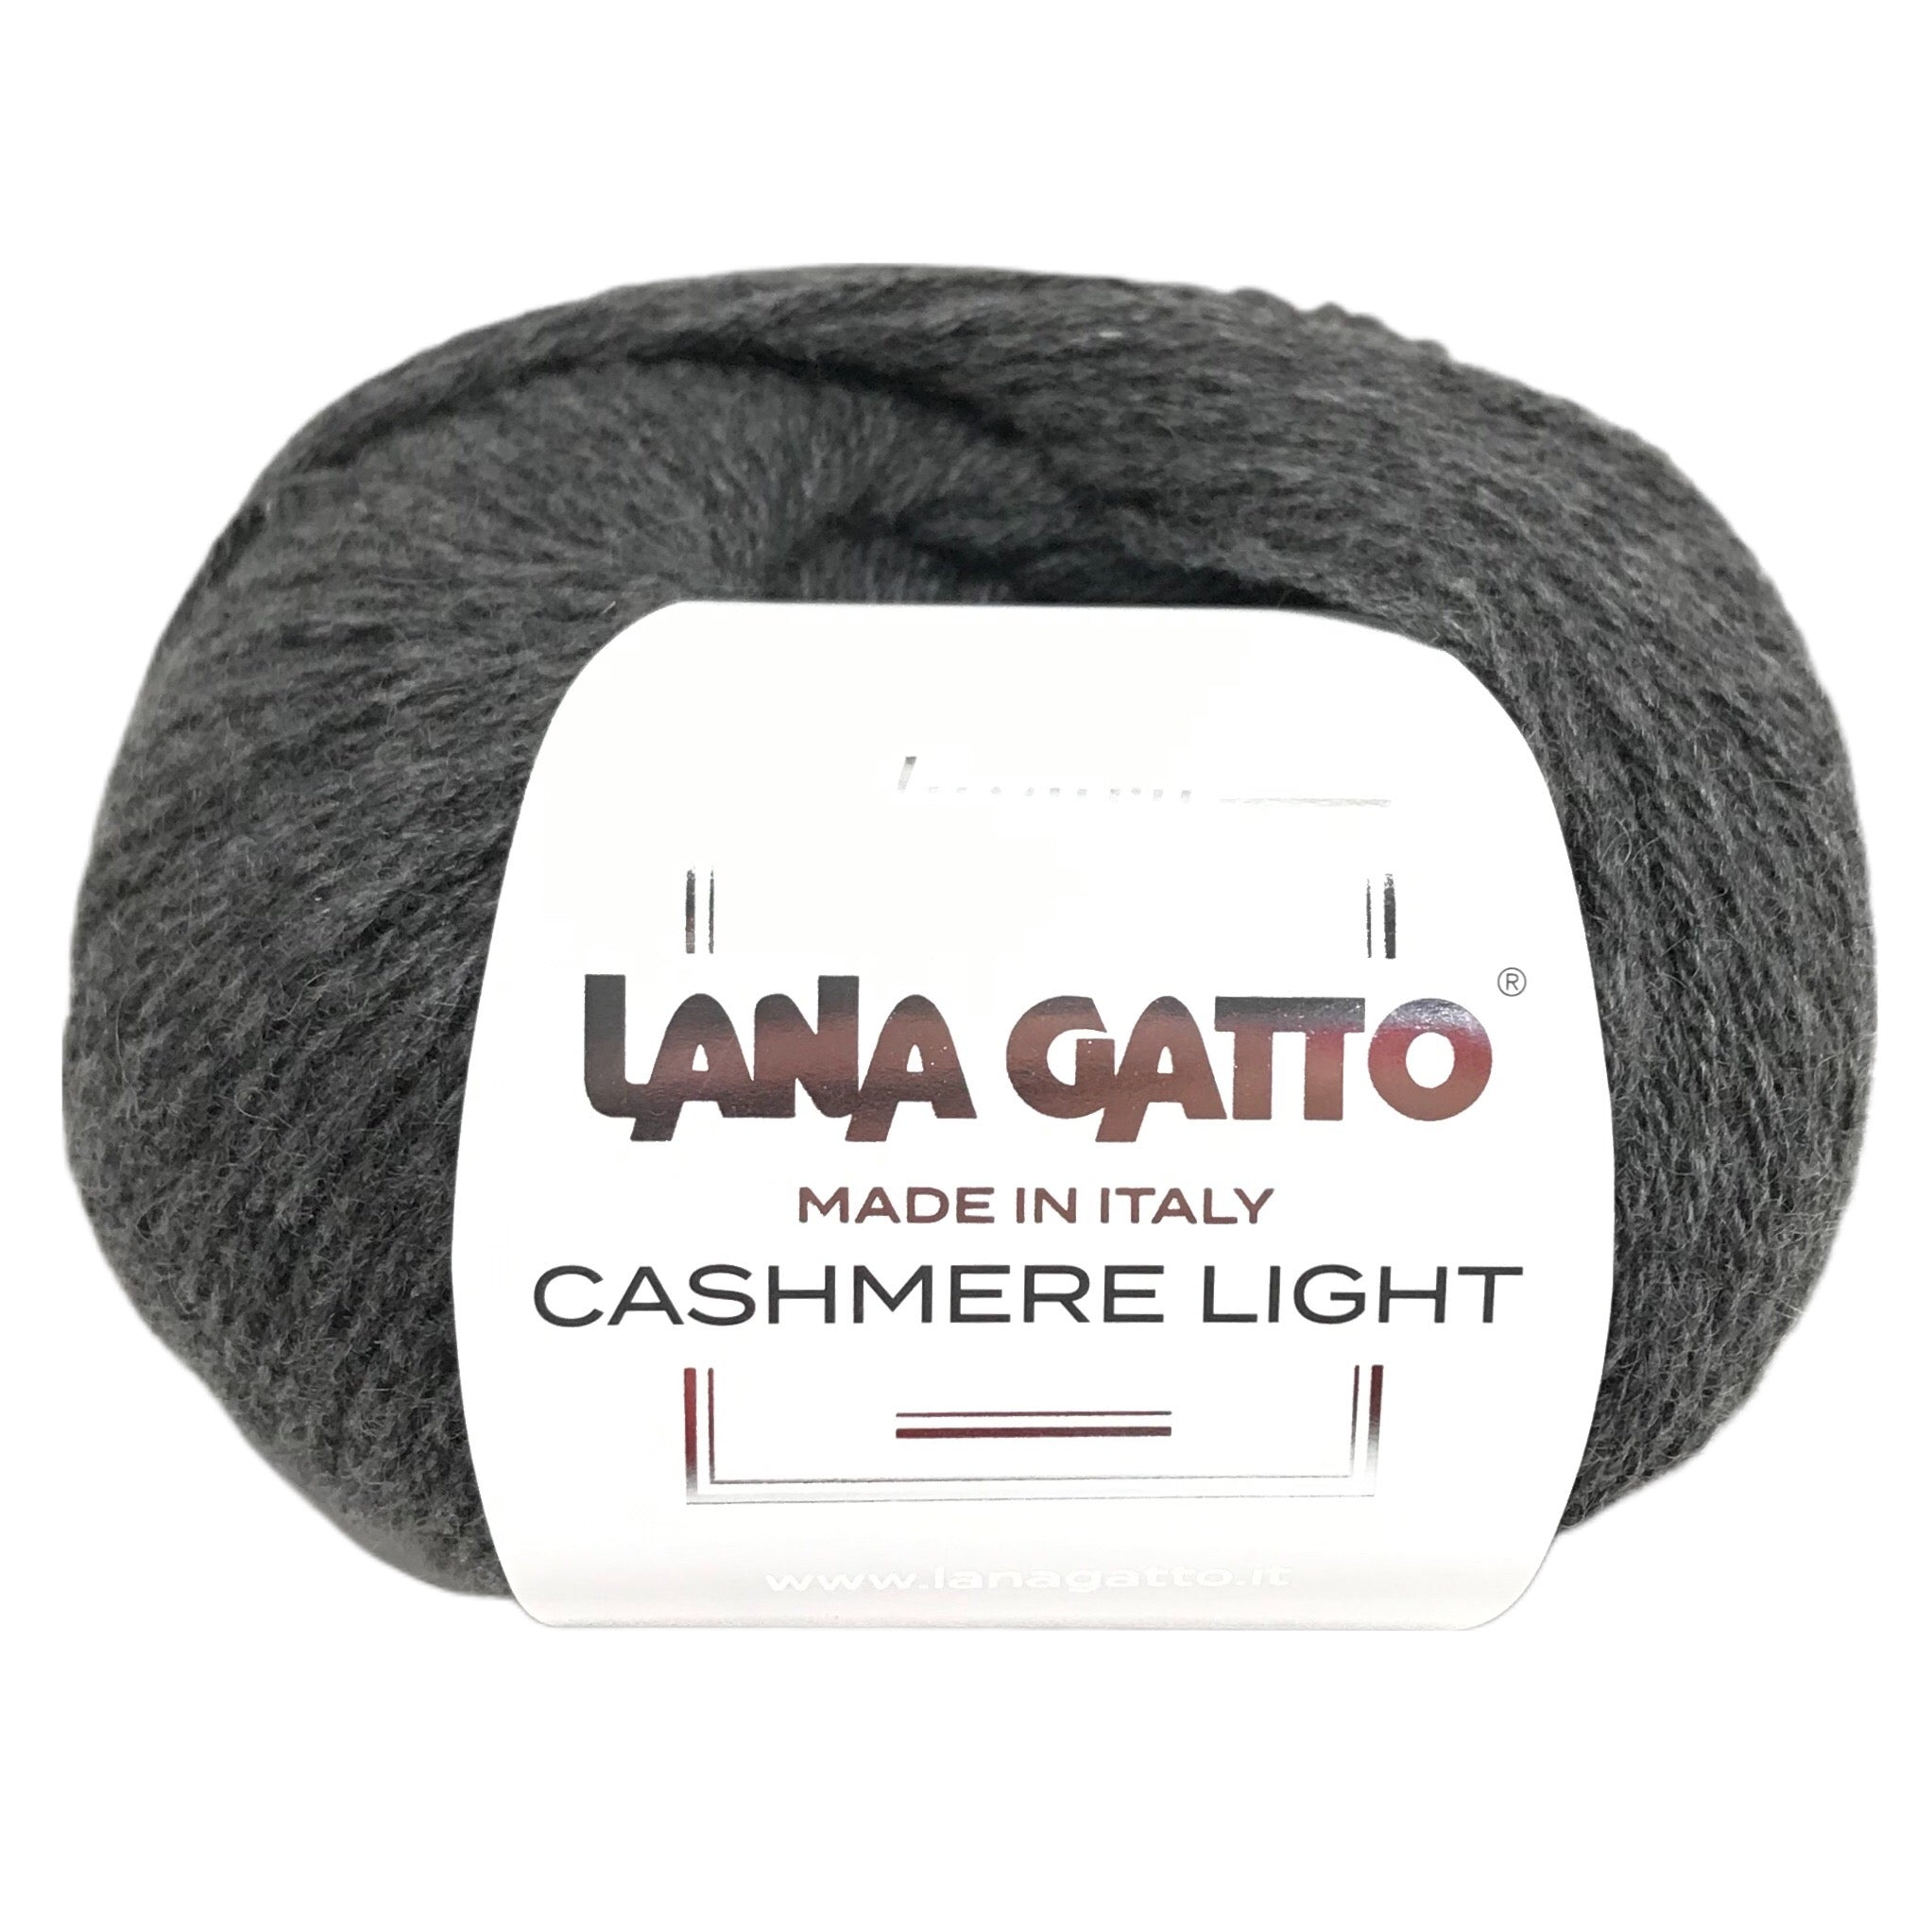 Cashmere Light Yarn by Lana Gatto